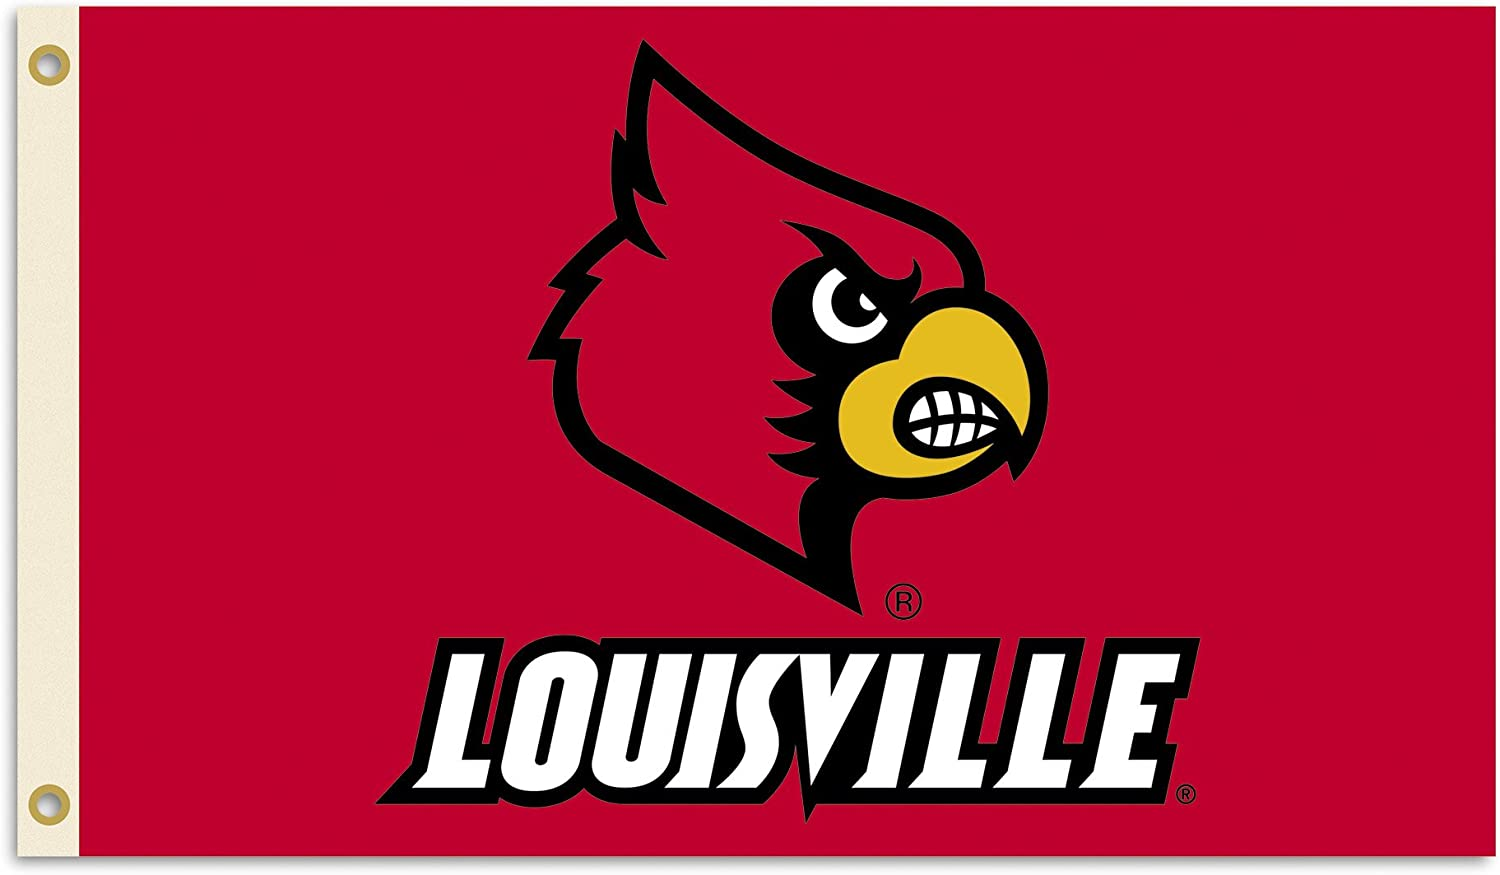 BSI NCAA College Louisville Cardinals 3 5 X Max 71% OFF Foot Popular product Flag Gromm with